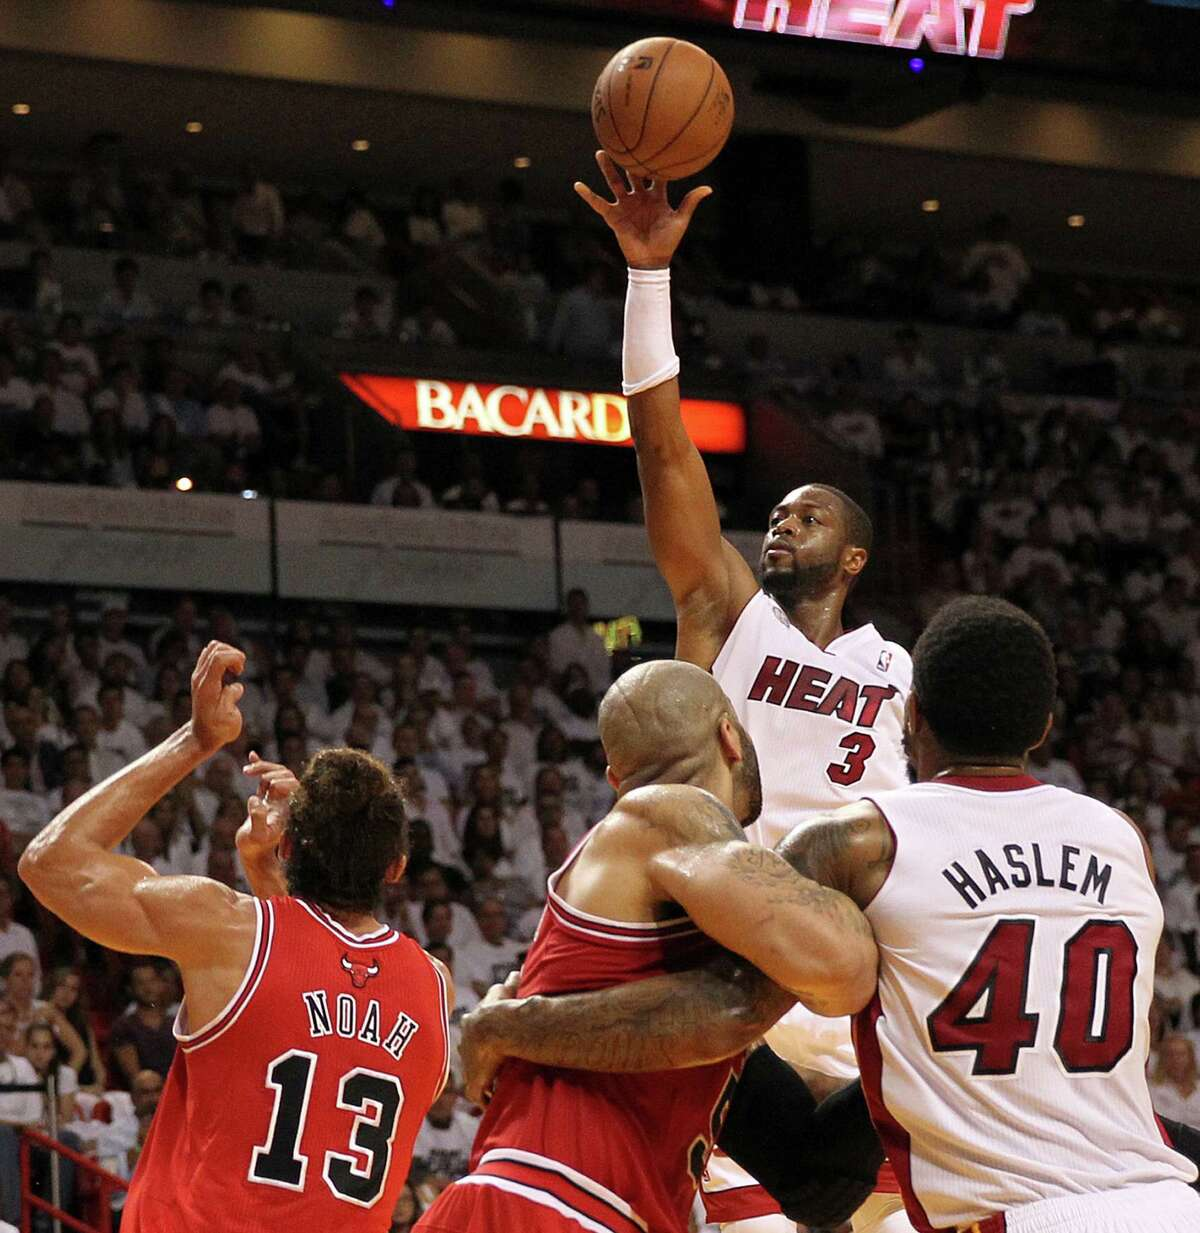 The Heat's Dwyane Wade shoots over the Bulls' defense during the third quarter. Wade, playing on a sore right knee, finished with 18 points.